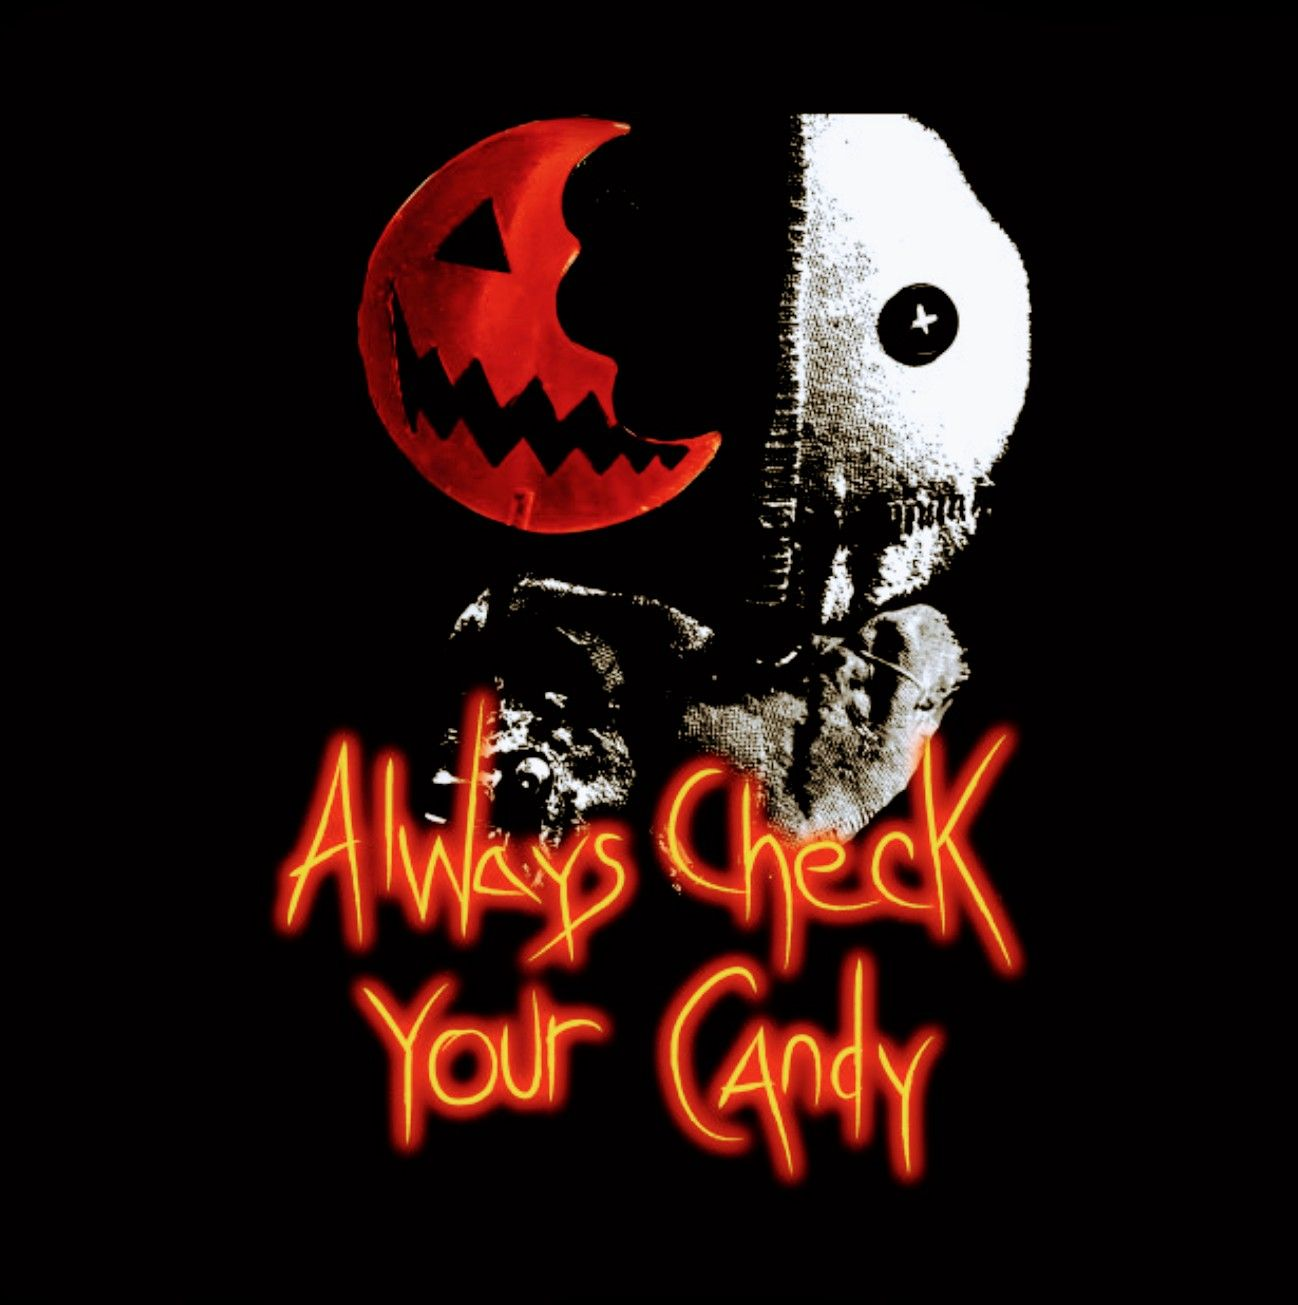 Pin by Kim Turner on Collections   Trick r treat, Sam